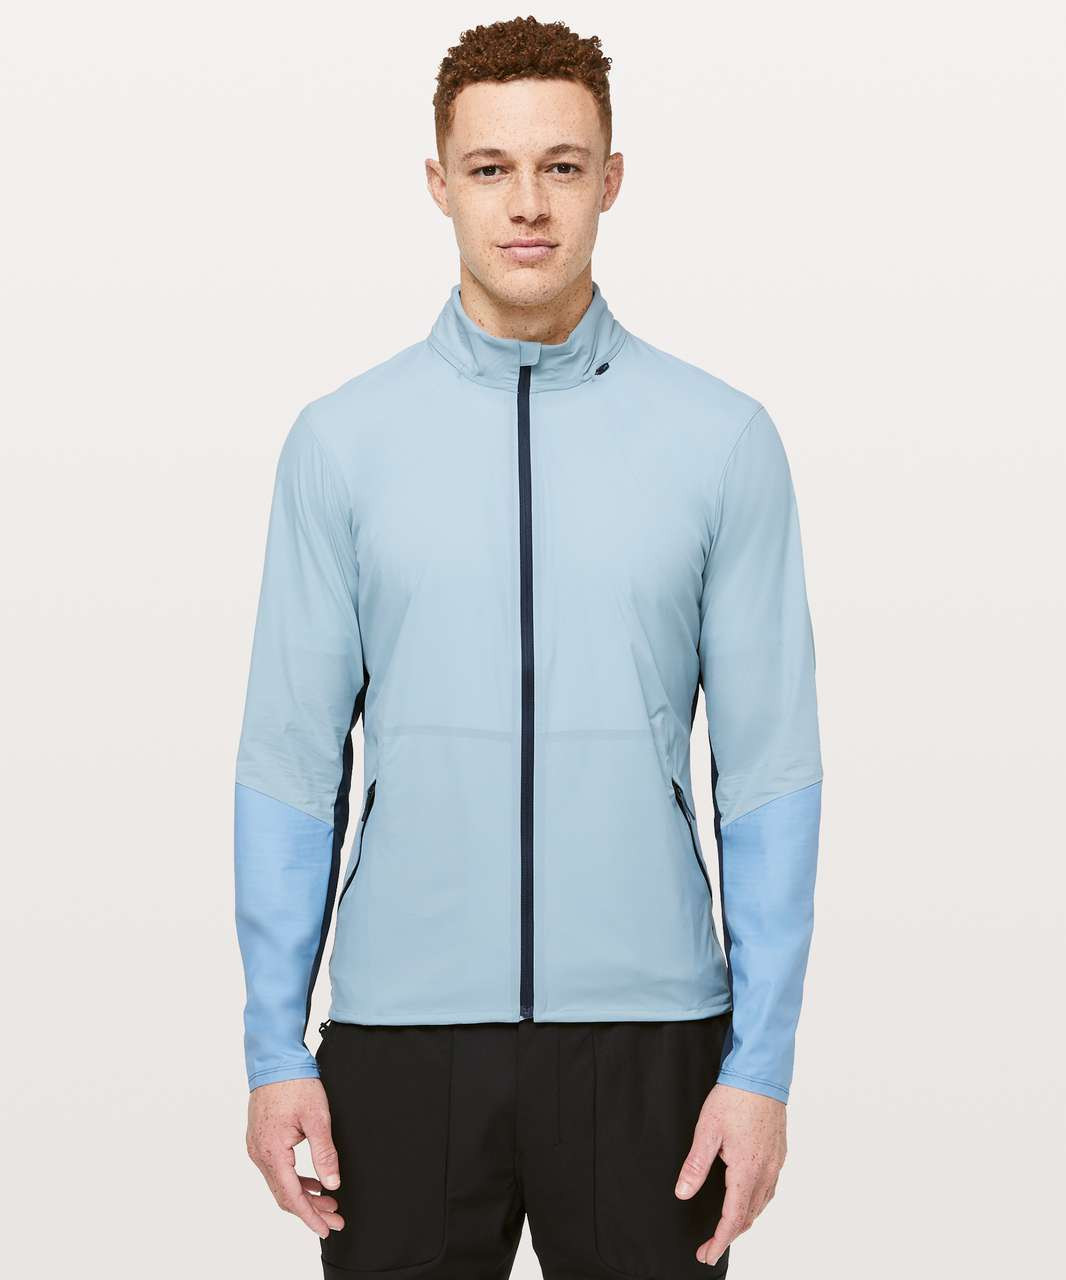 Lululemon Active Jacket - Blue Cast / Utility Blue / True Navy